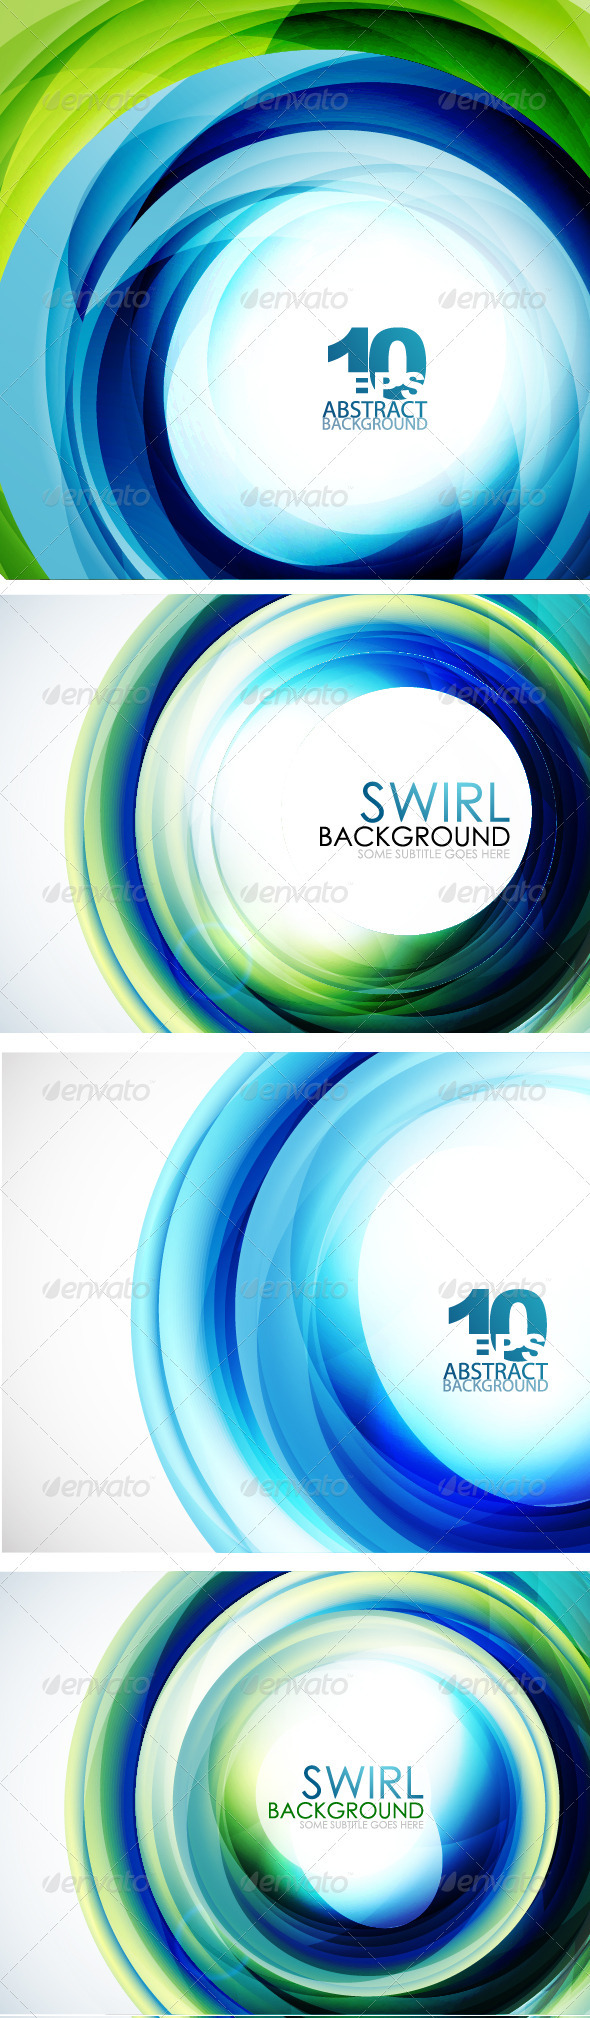 GraphicRiver Blue Swirl Backgrounds 3649578